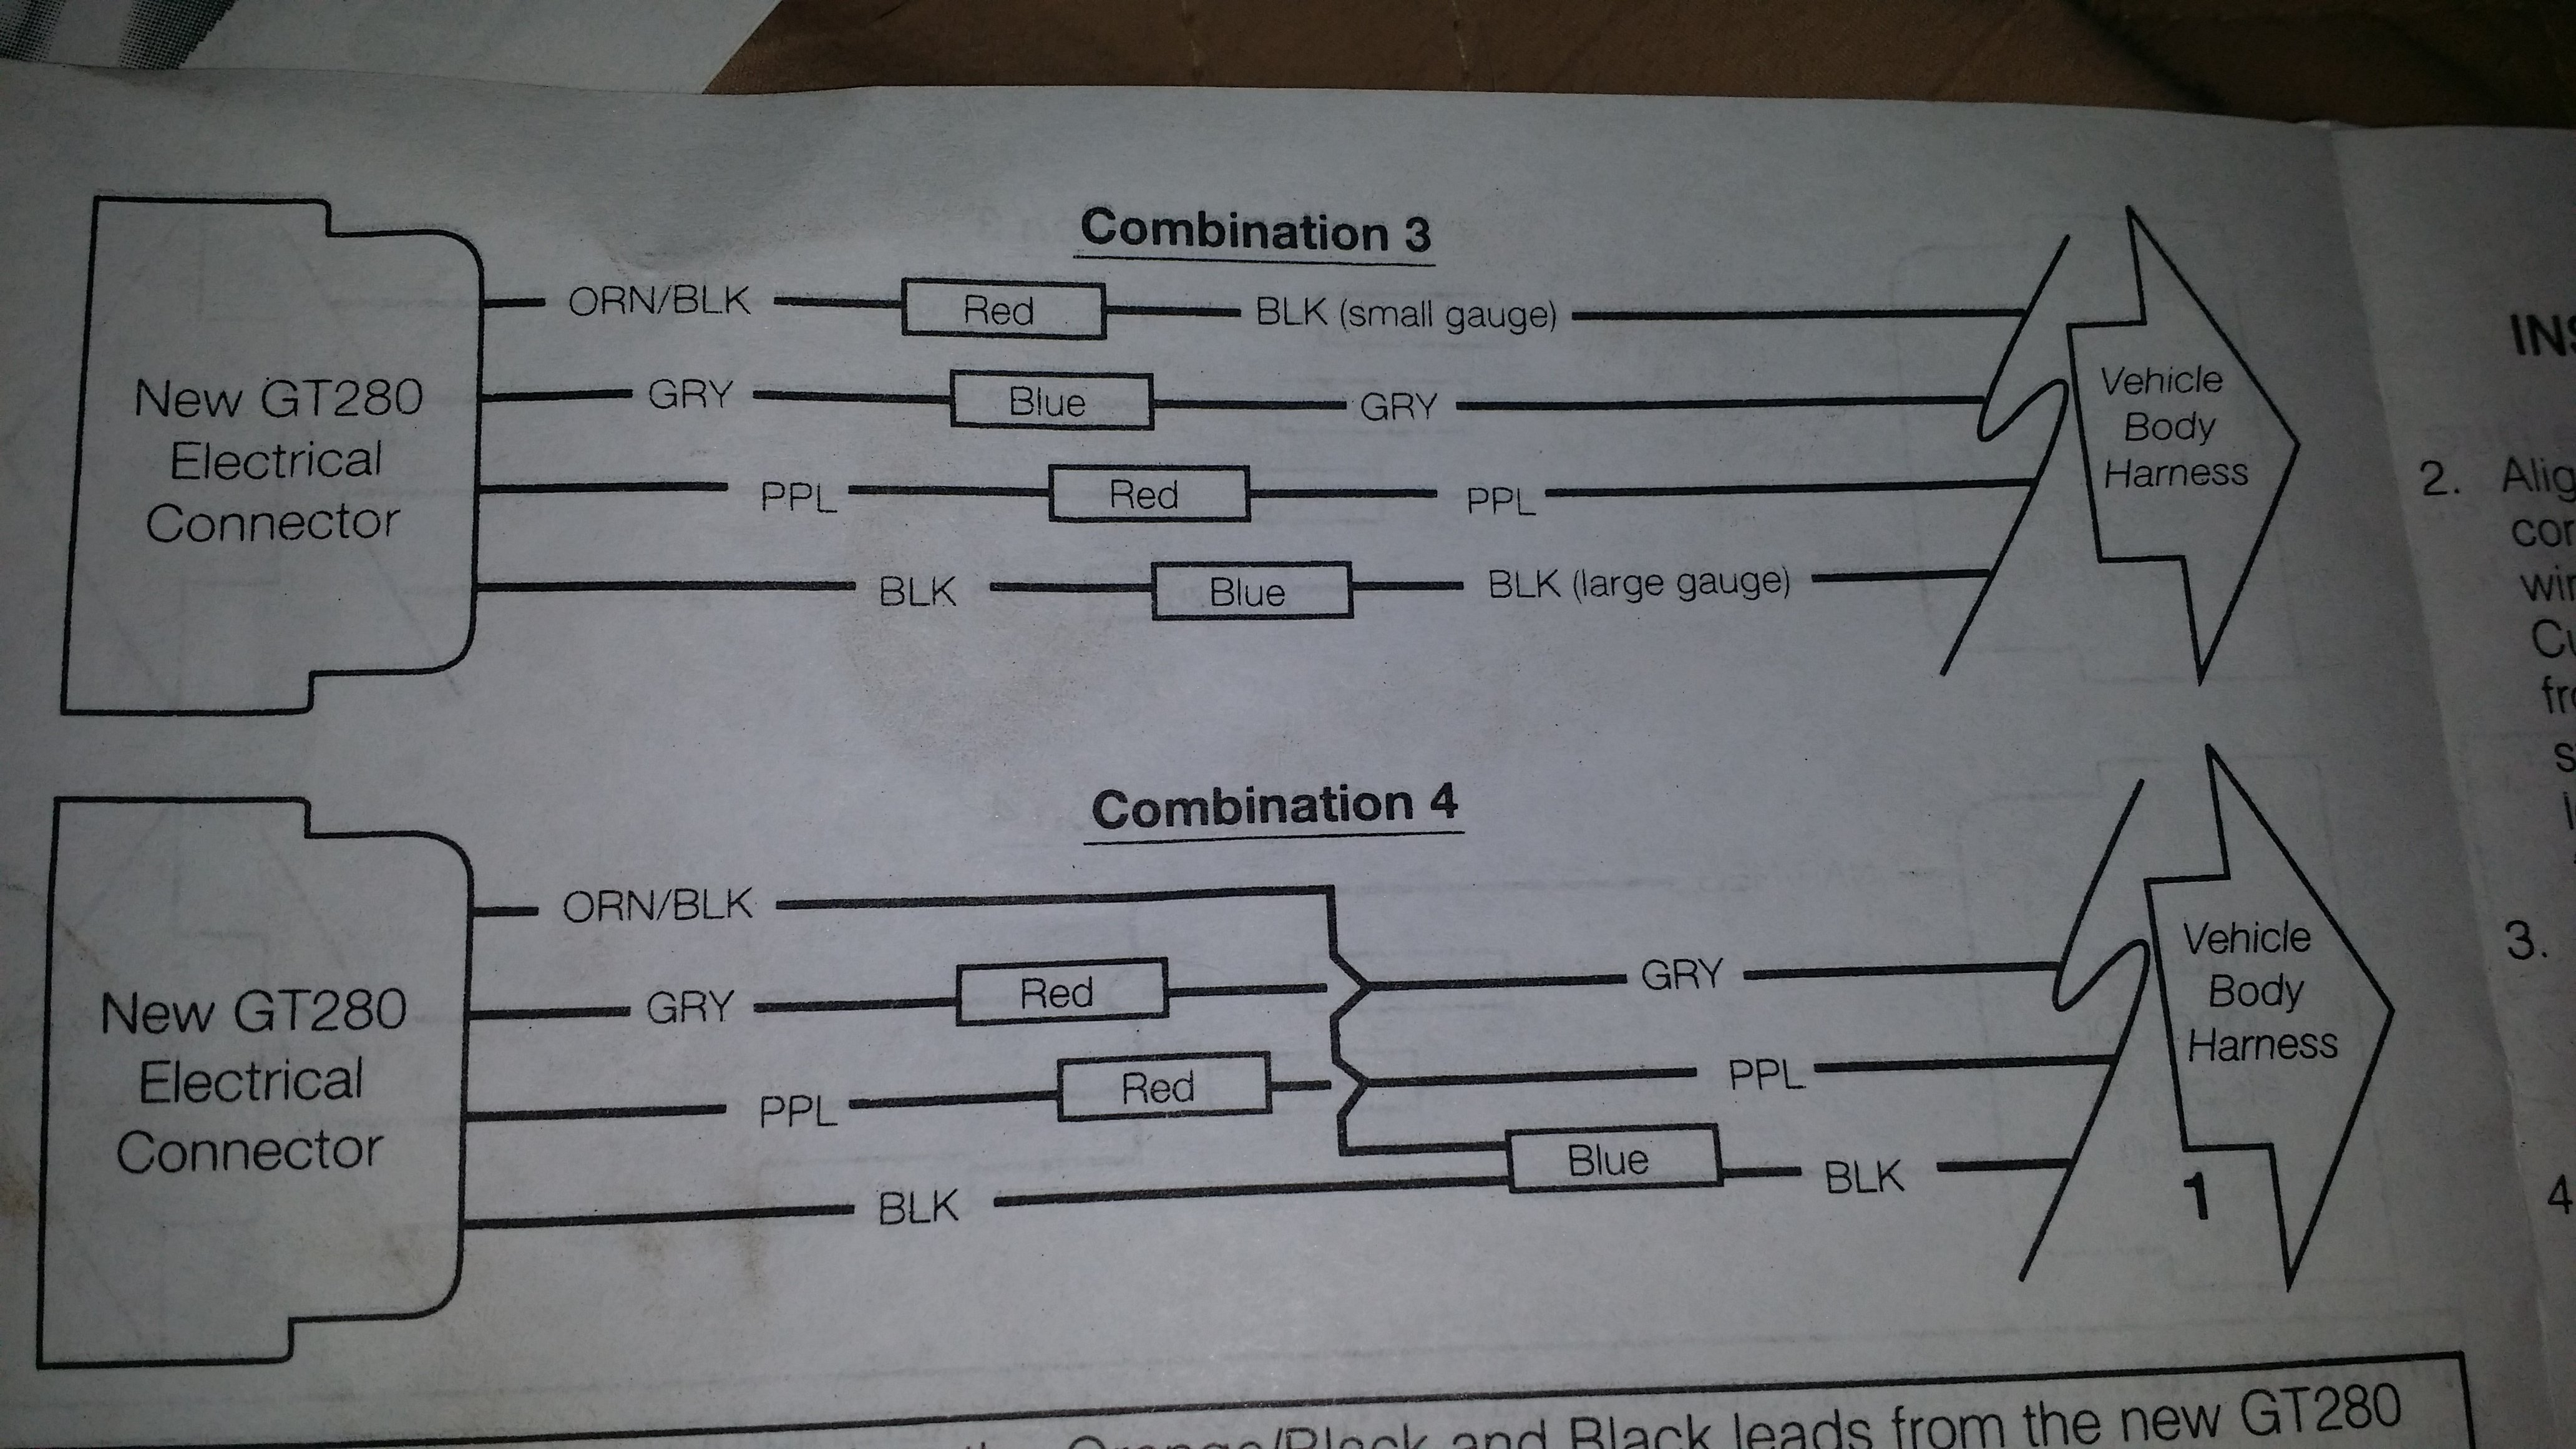 Trying To Wire The Gt280 Connector For The Fuel Pump On 2002 Chevy Silverado 1500 Hd But The Diagram In The Instructions